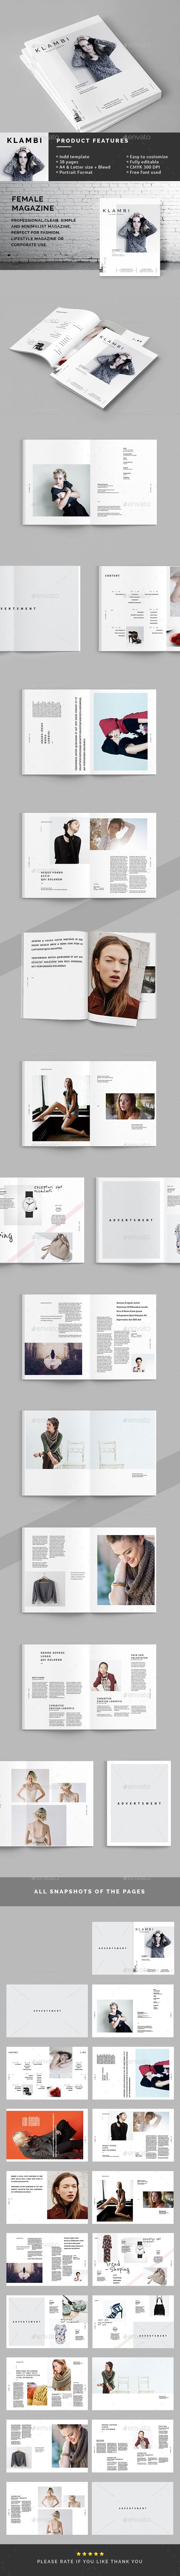 Female Magazine Template InDesign INDD #design Download: http://graphicriver.net/item/female-magazine-template/13893581?ref=ksioks